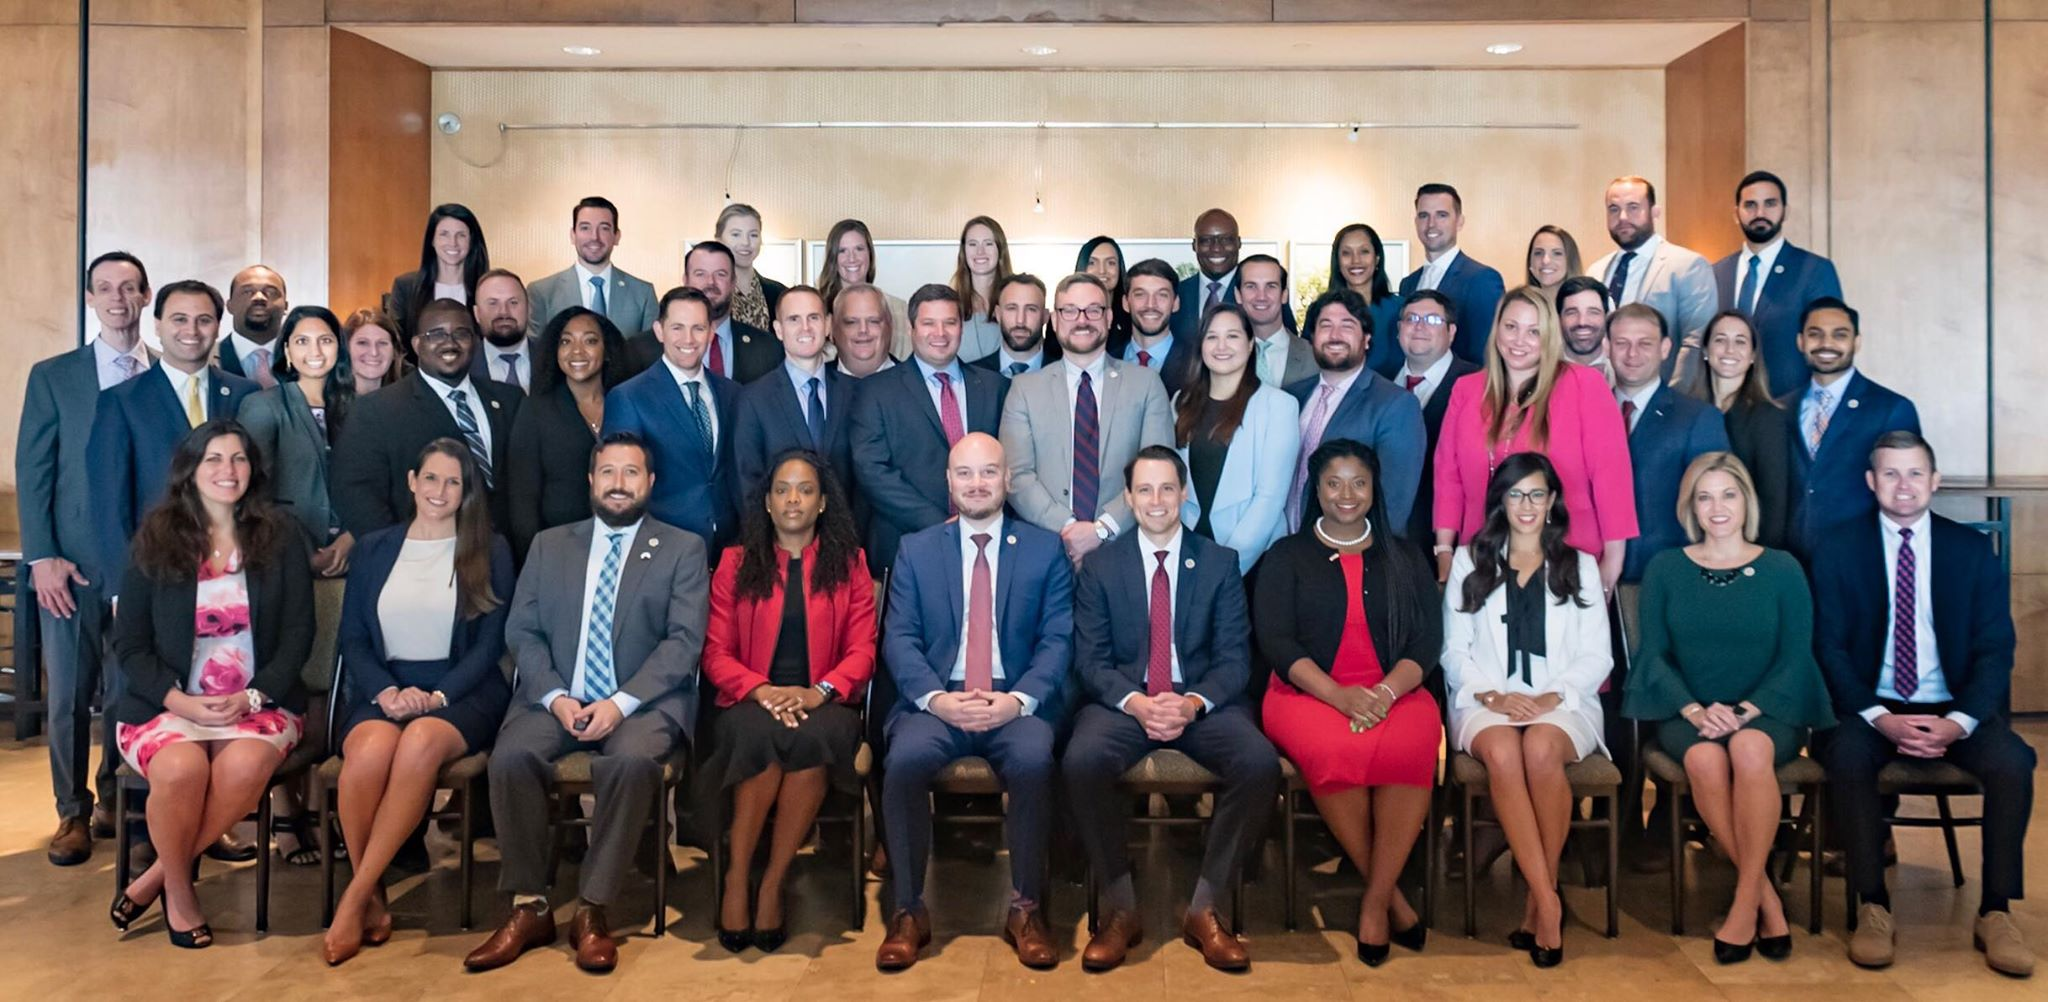 2019-20 Board of Governors large group picture